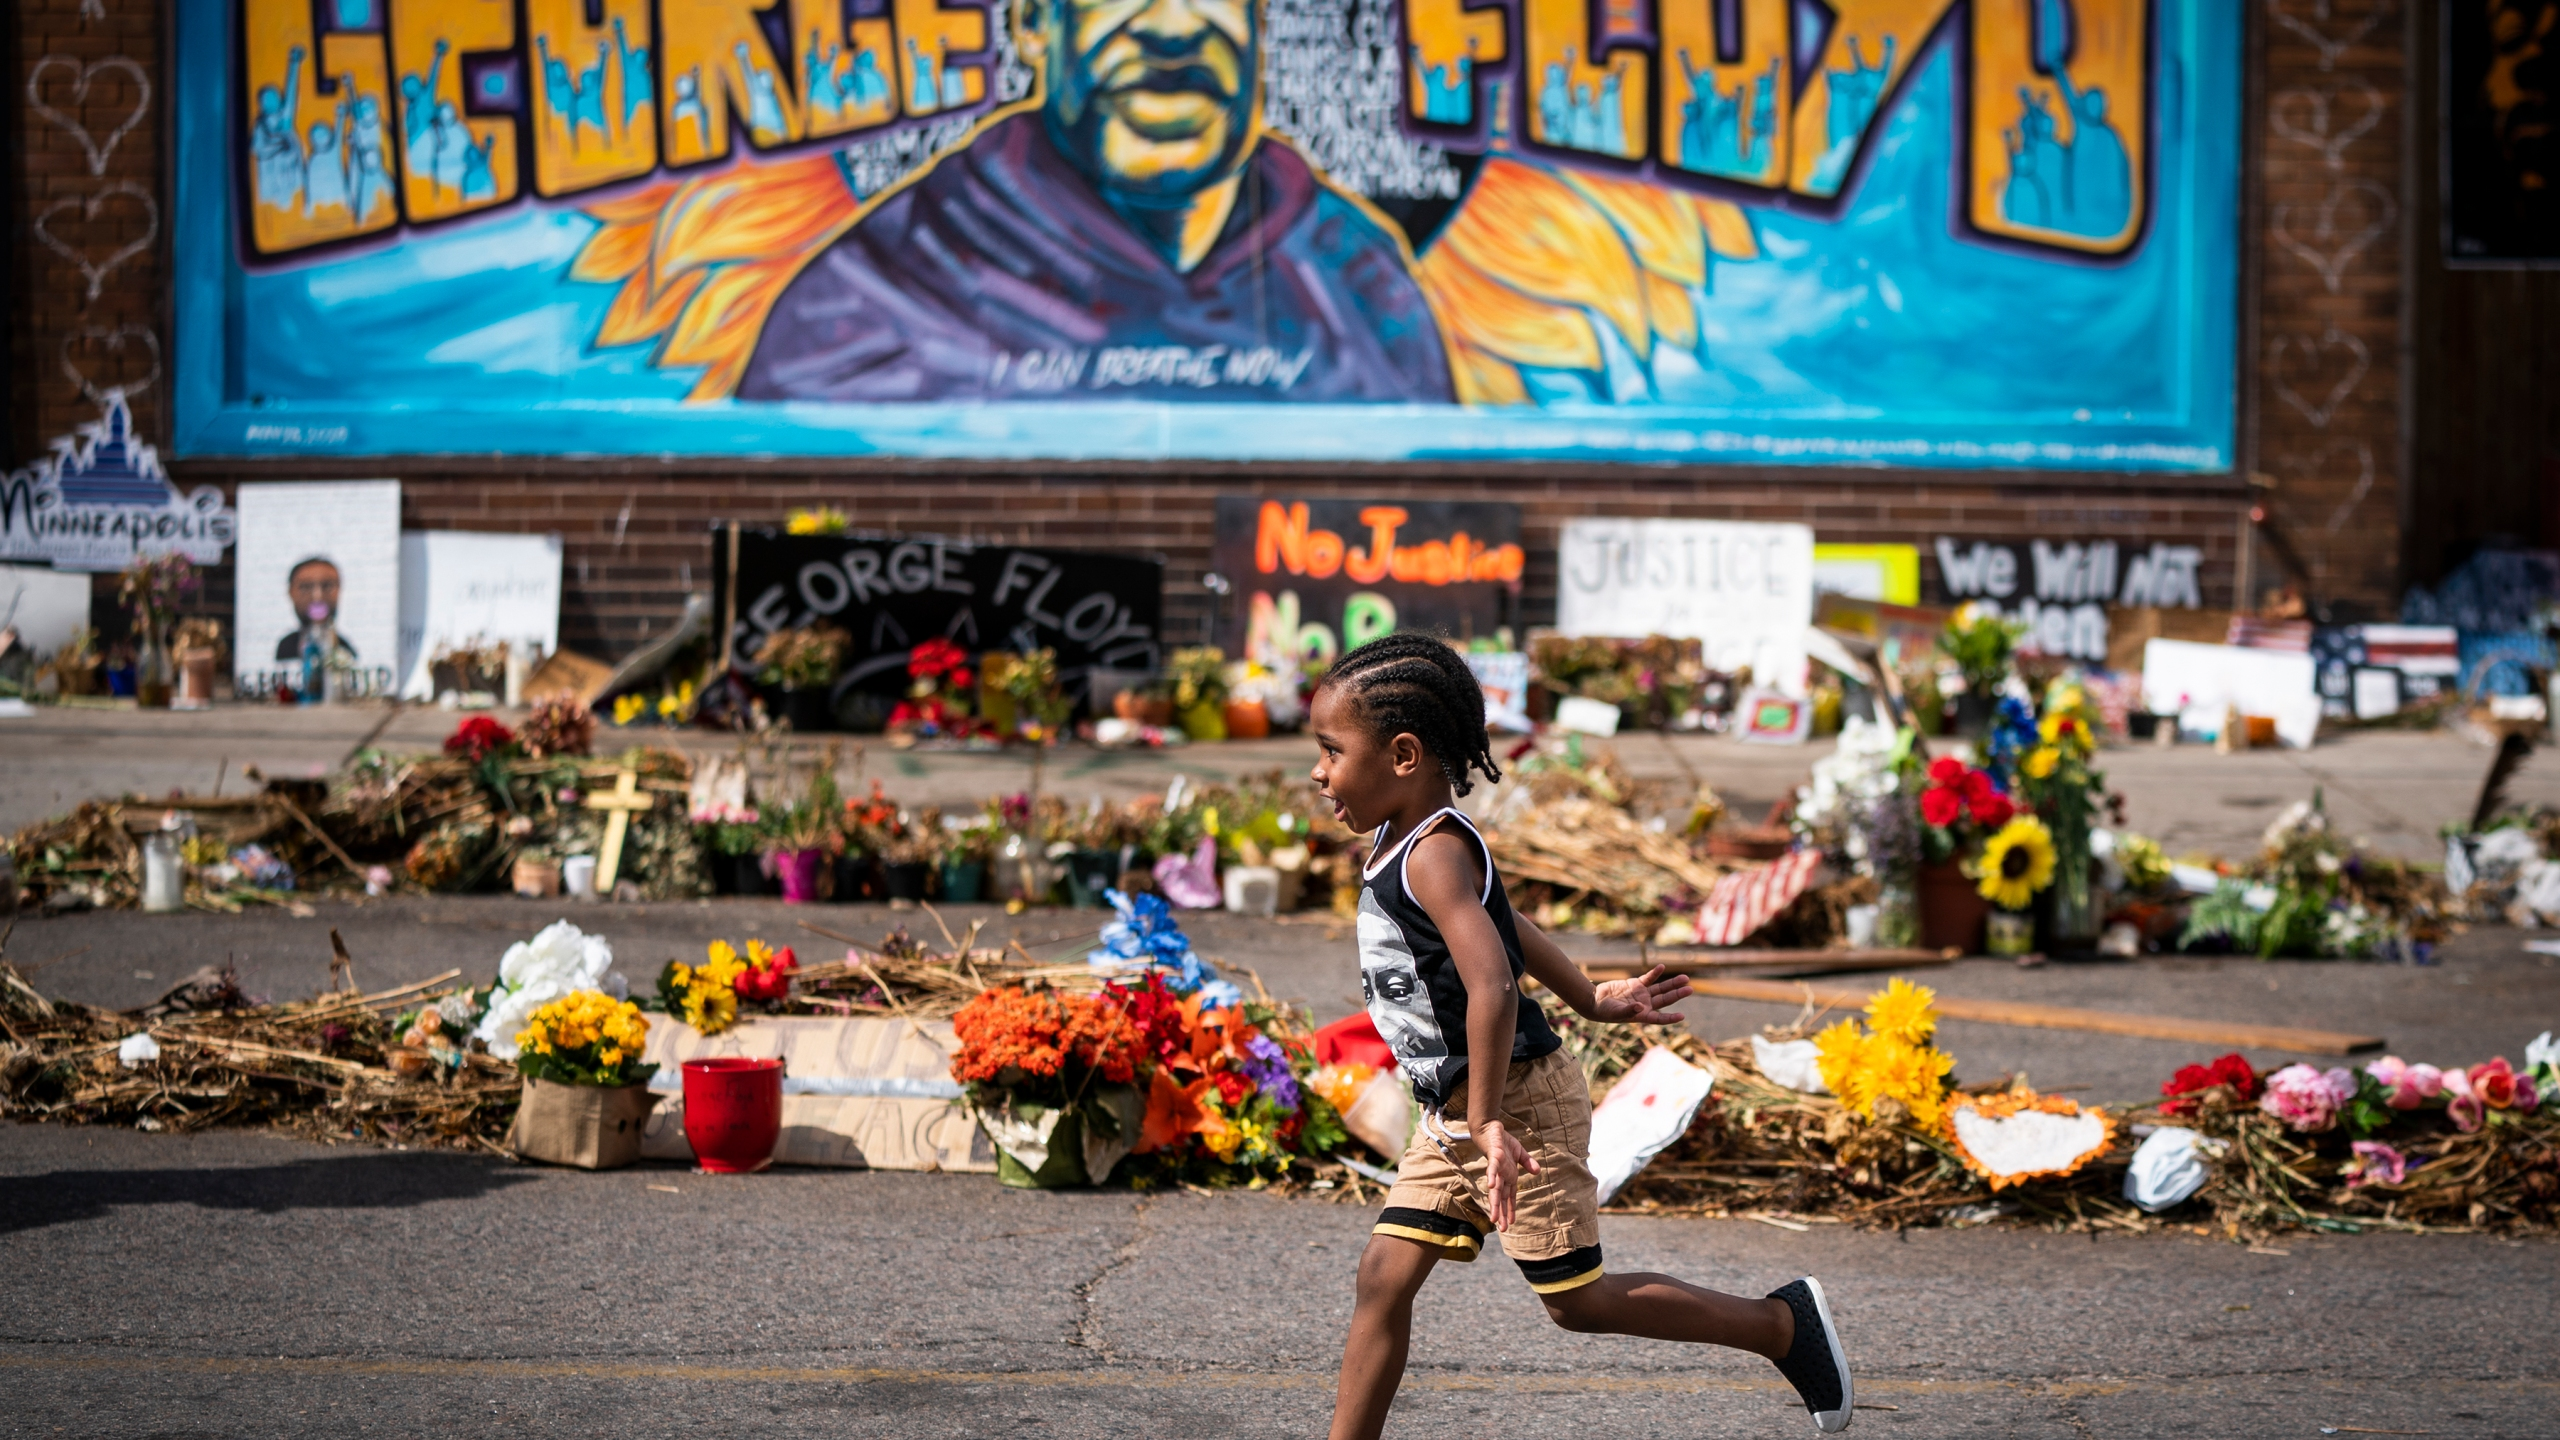 In this June 25, 2020 file photo, Carter Sims, 3, of Pine Island, Minn., runs past a mural at the George Floyd memorial outside Cup Foods in Minneapolis. (Leila Navidi/Star Tribune via AP, File)